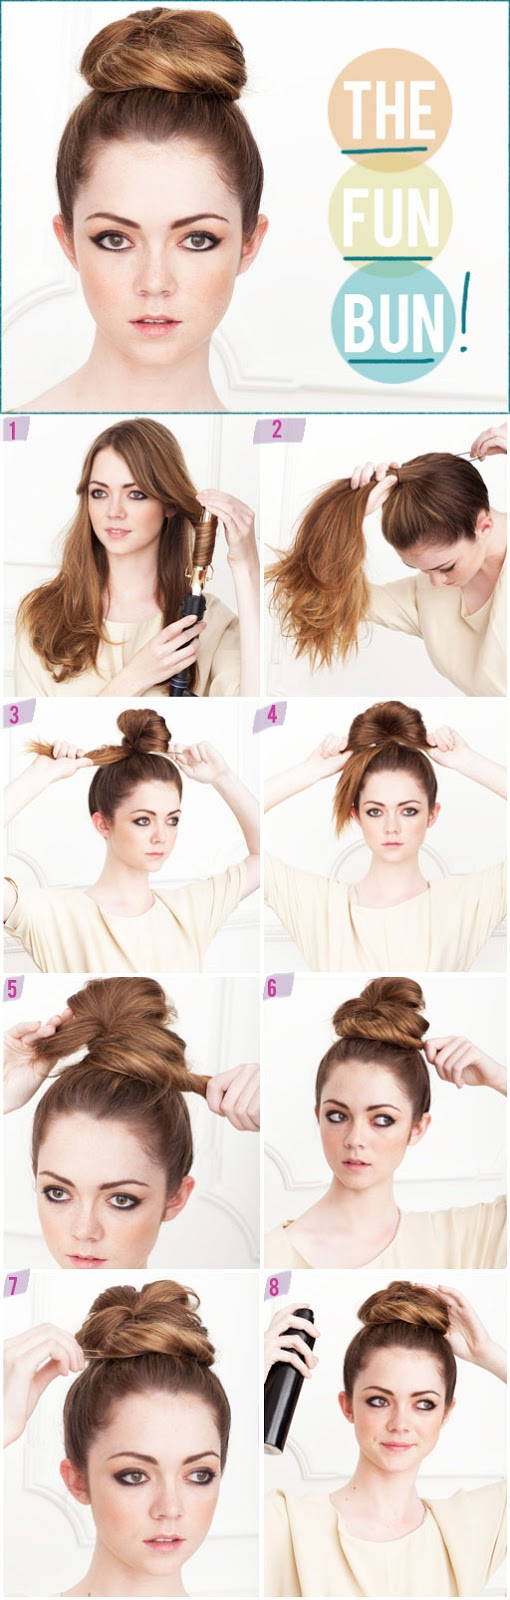 How To Make A Hair Style how to make a hair bun for your wedding hair style pinterest 6075 by wearticles.com